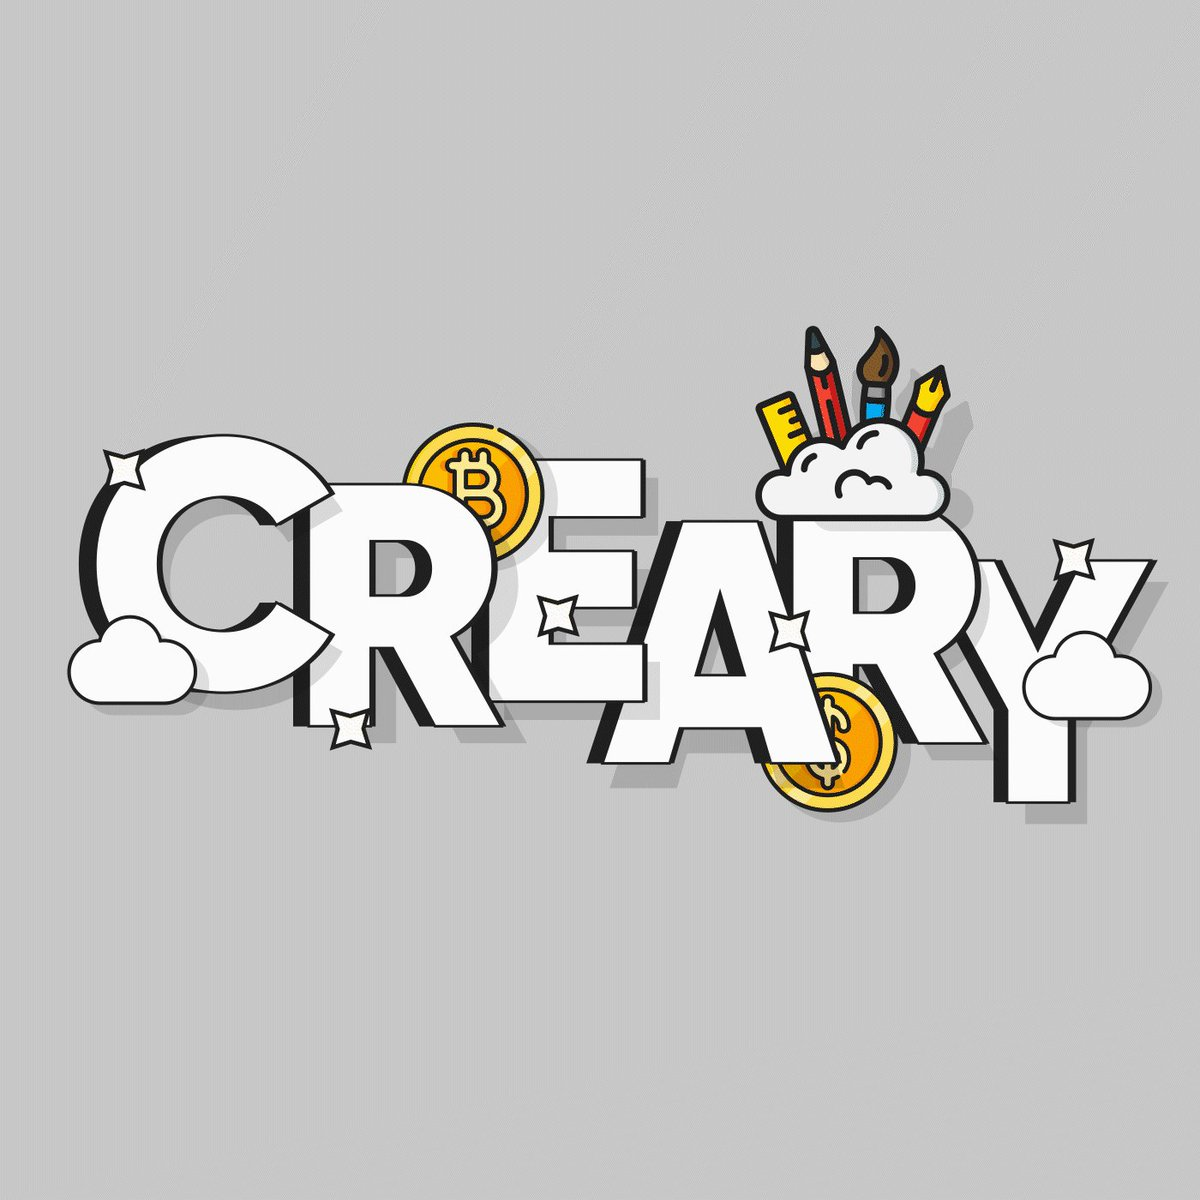 Image for the Tweet beginning: Creary is the gateway 🚪🤩to